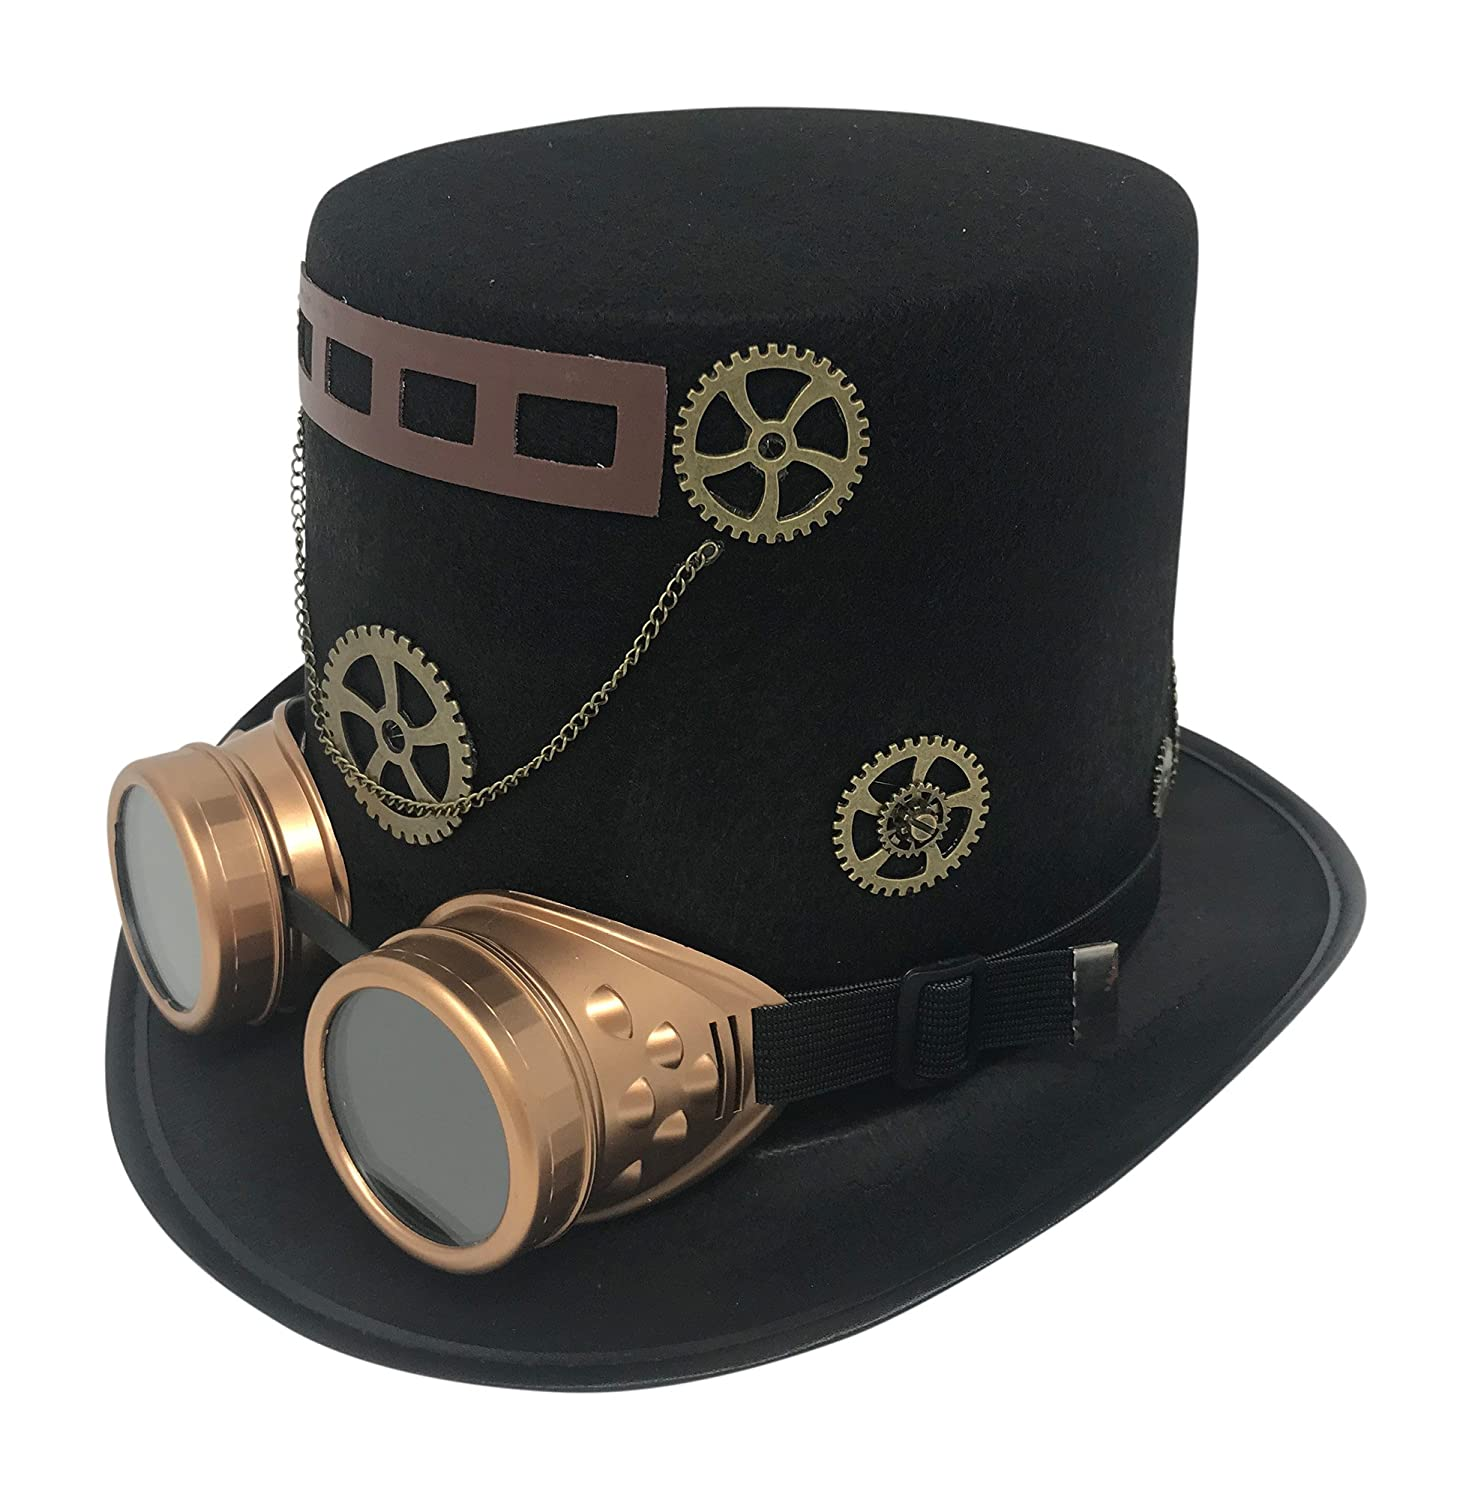 Amazon.com  Steampunk Costume Tall Black Top Hat Goggles Gears   Ribbon  with Chain Victorian Gothic Accessories  Clothing c65a9d3a5785